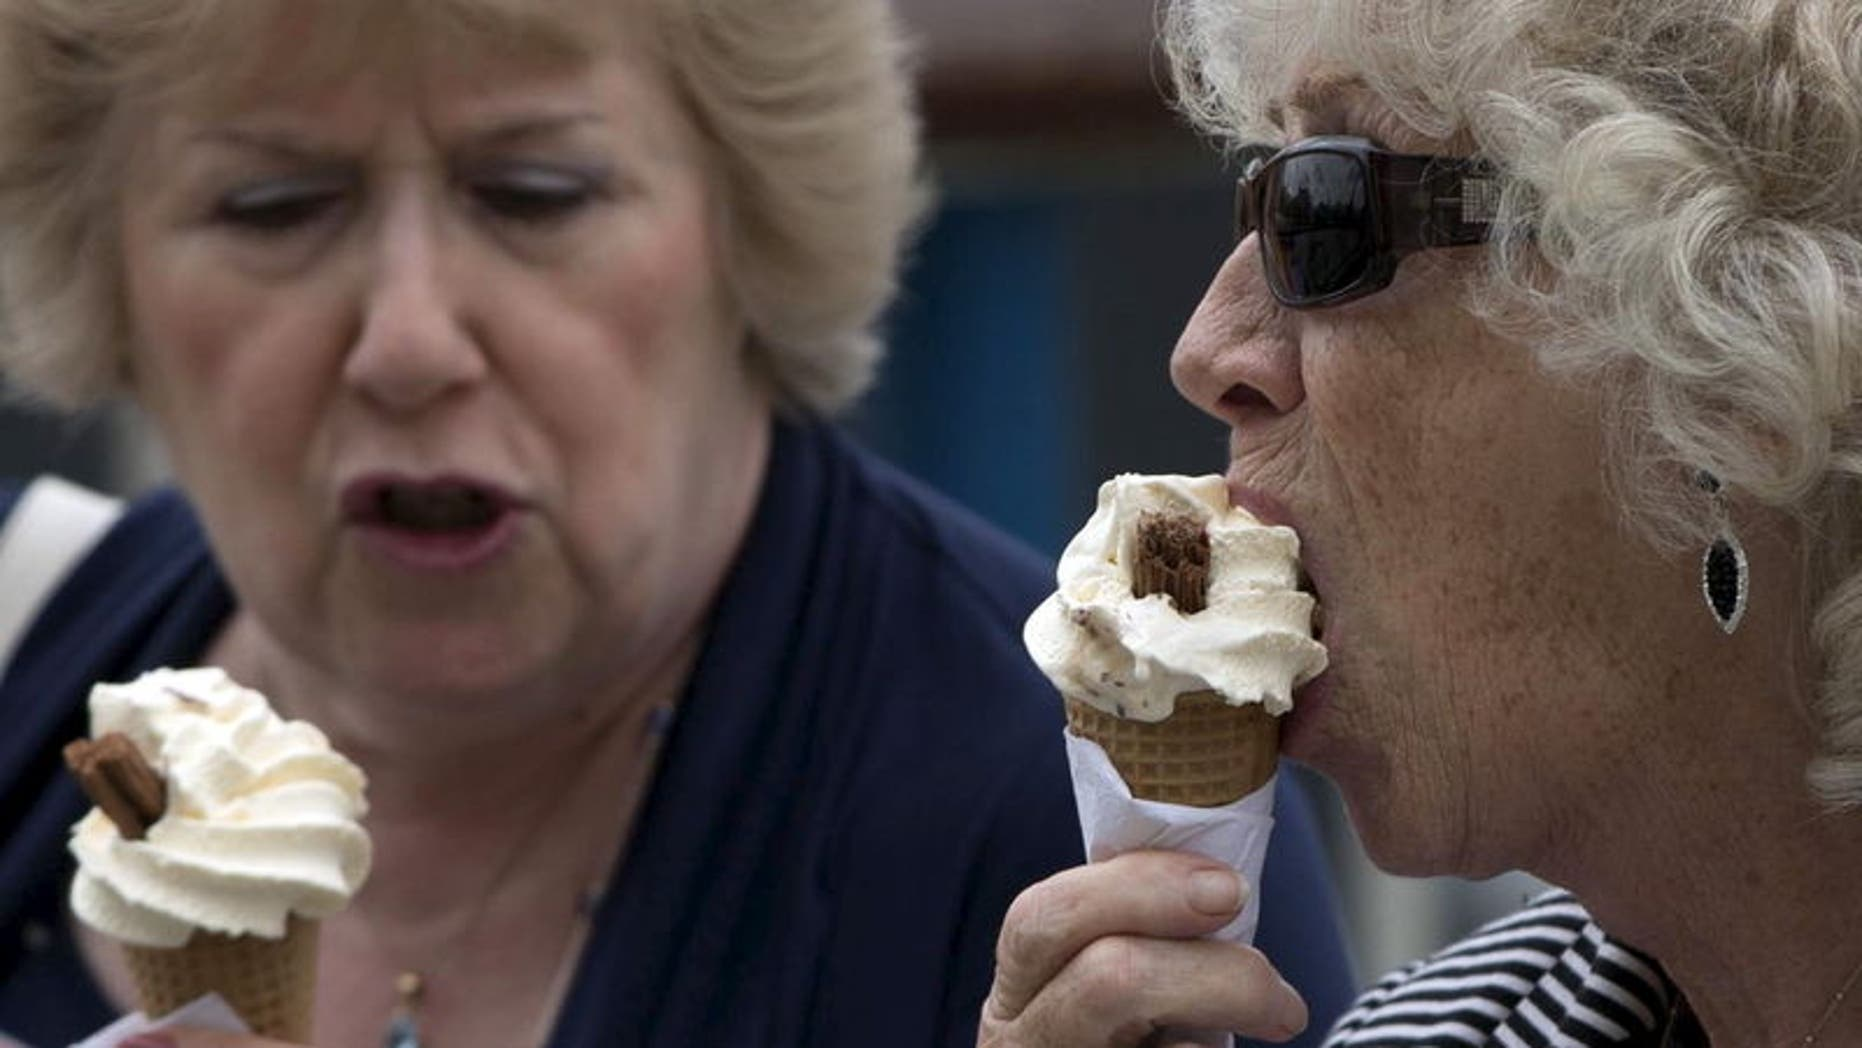 Women eat ice cream cones in London, Britain, in this photograph taken on August 29, 2015. REUTERS/Neil Hall